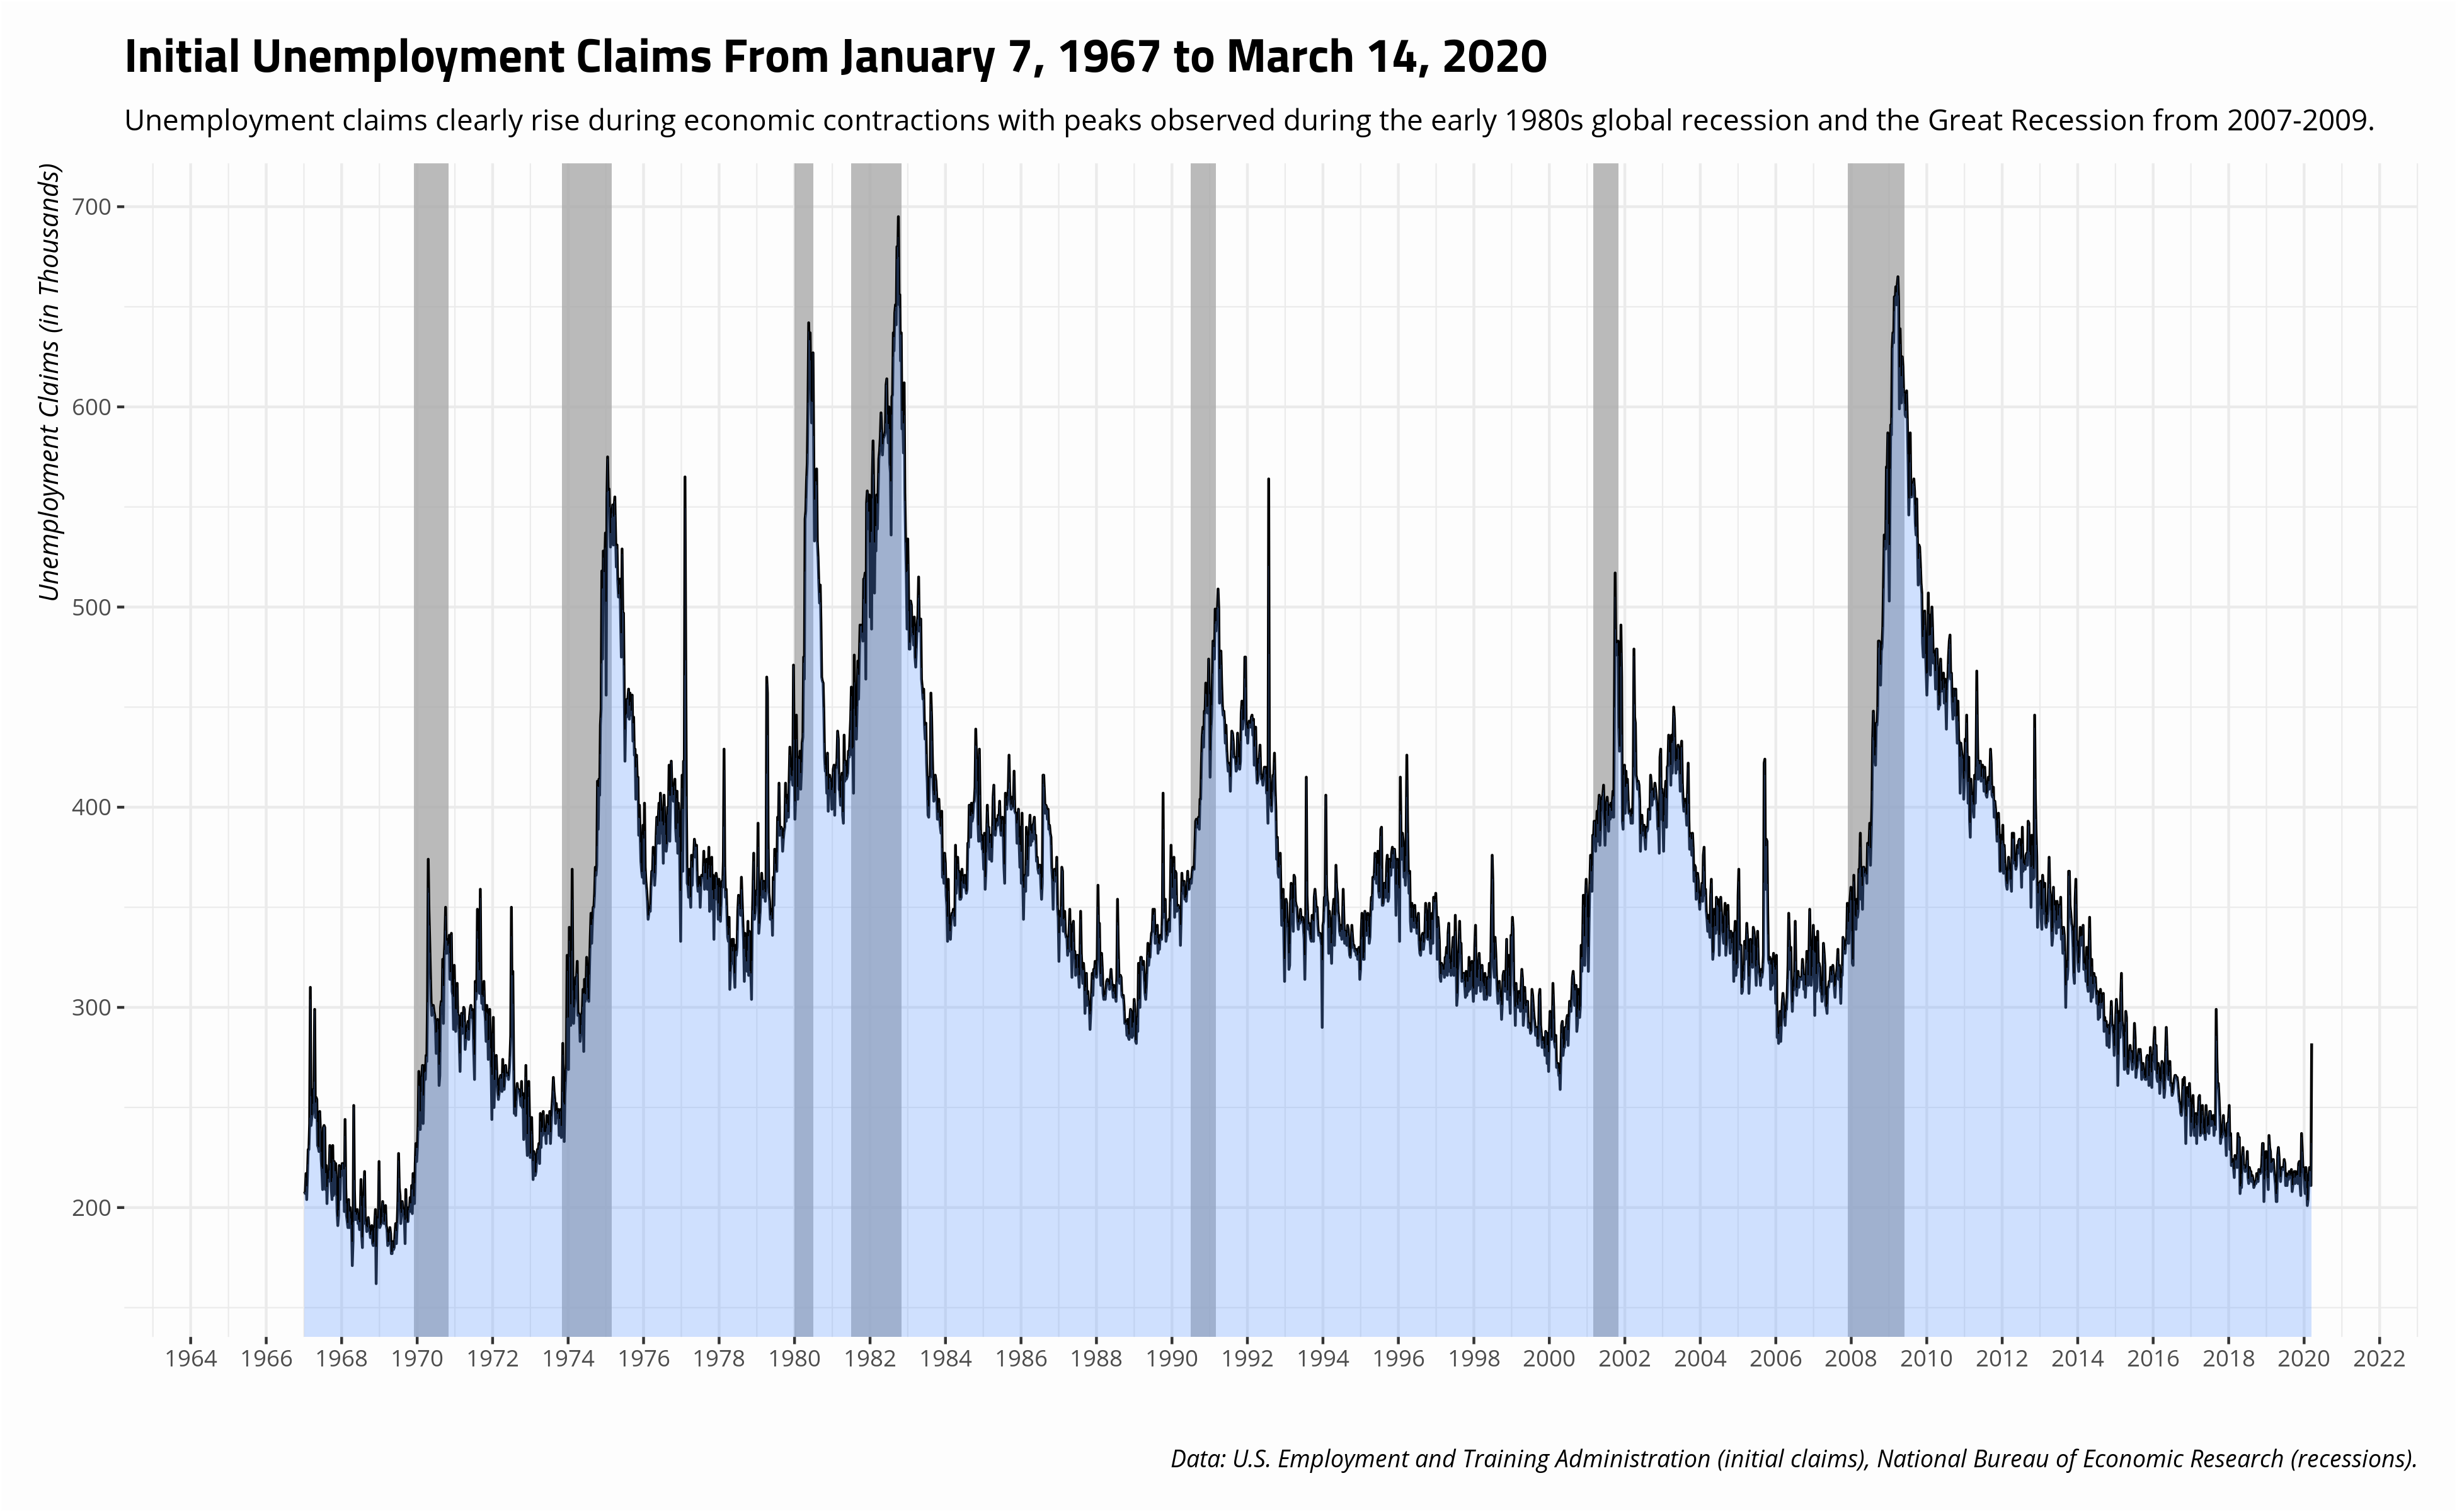 plot of chunk initial-claims-data-1967-before-covid19